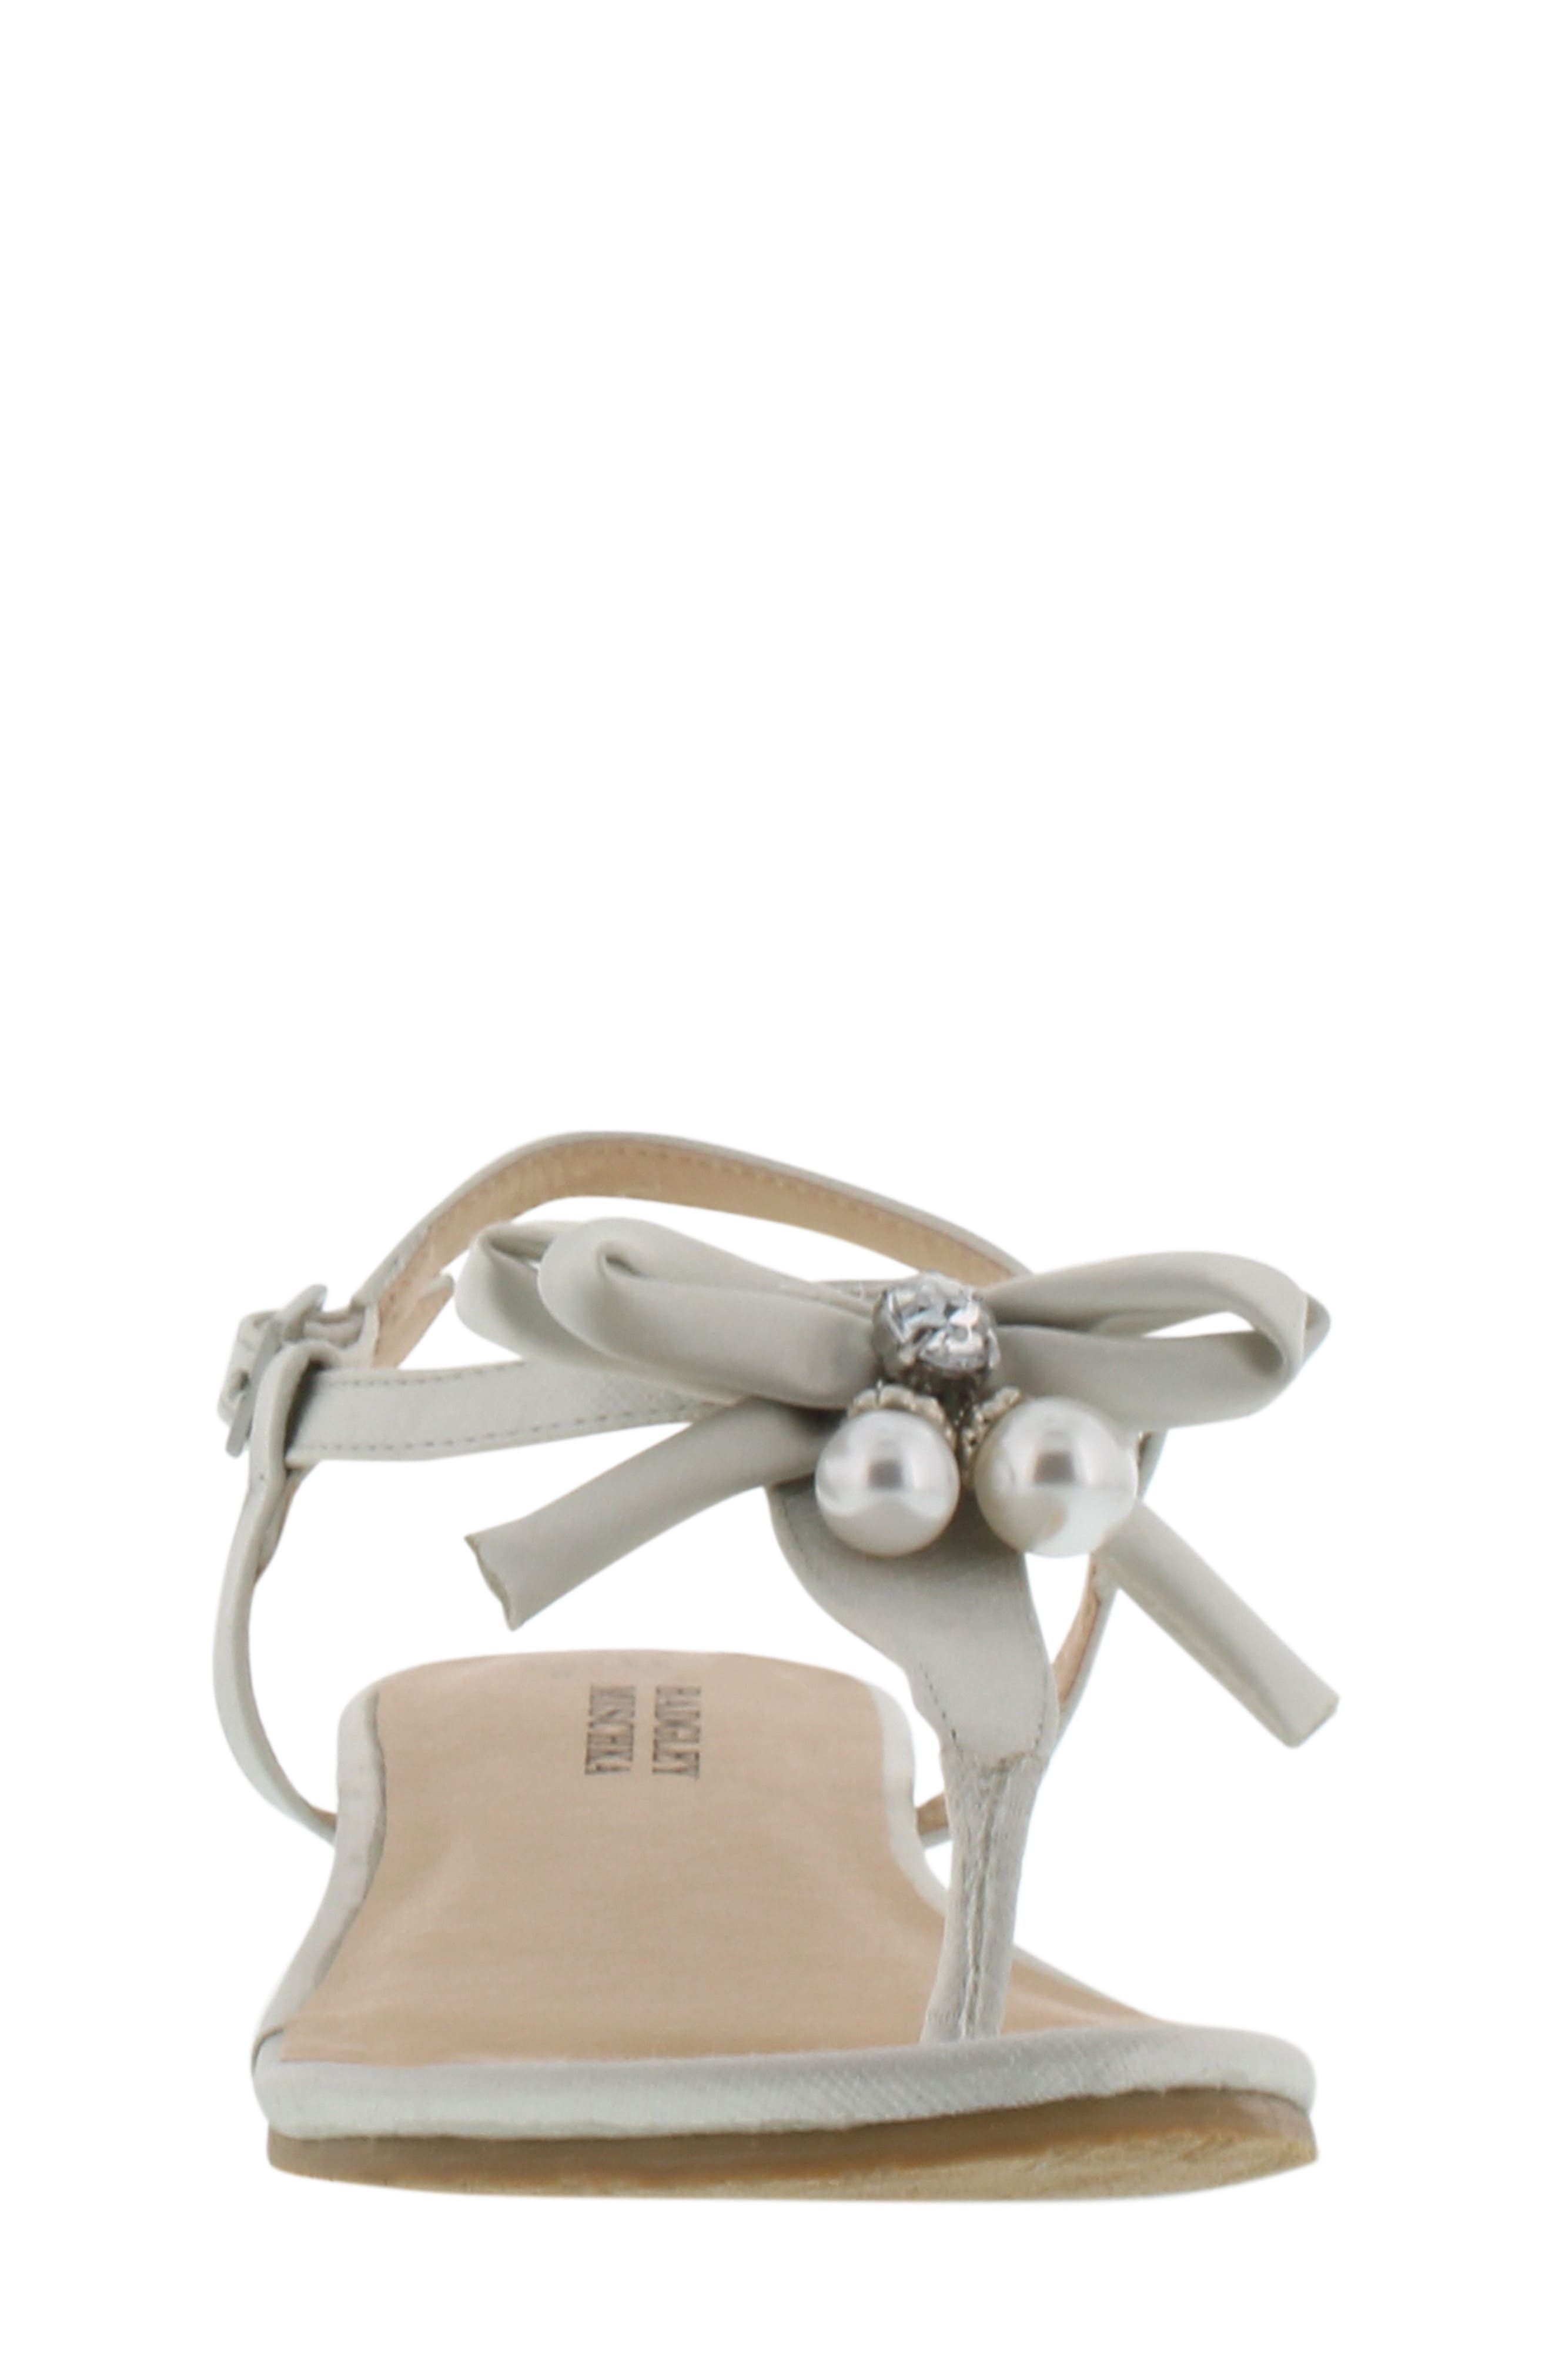 Badgley Mischka Talia Embellished Bow Sandal,                             Alternate thumbnail 4, color,                             040